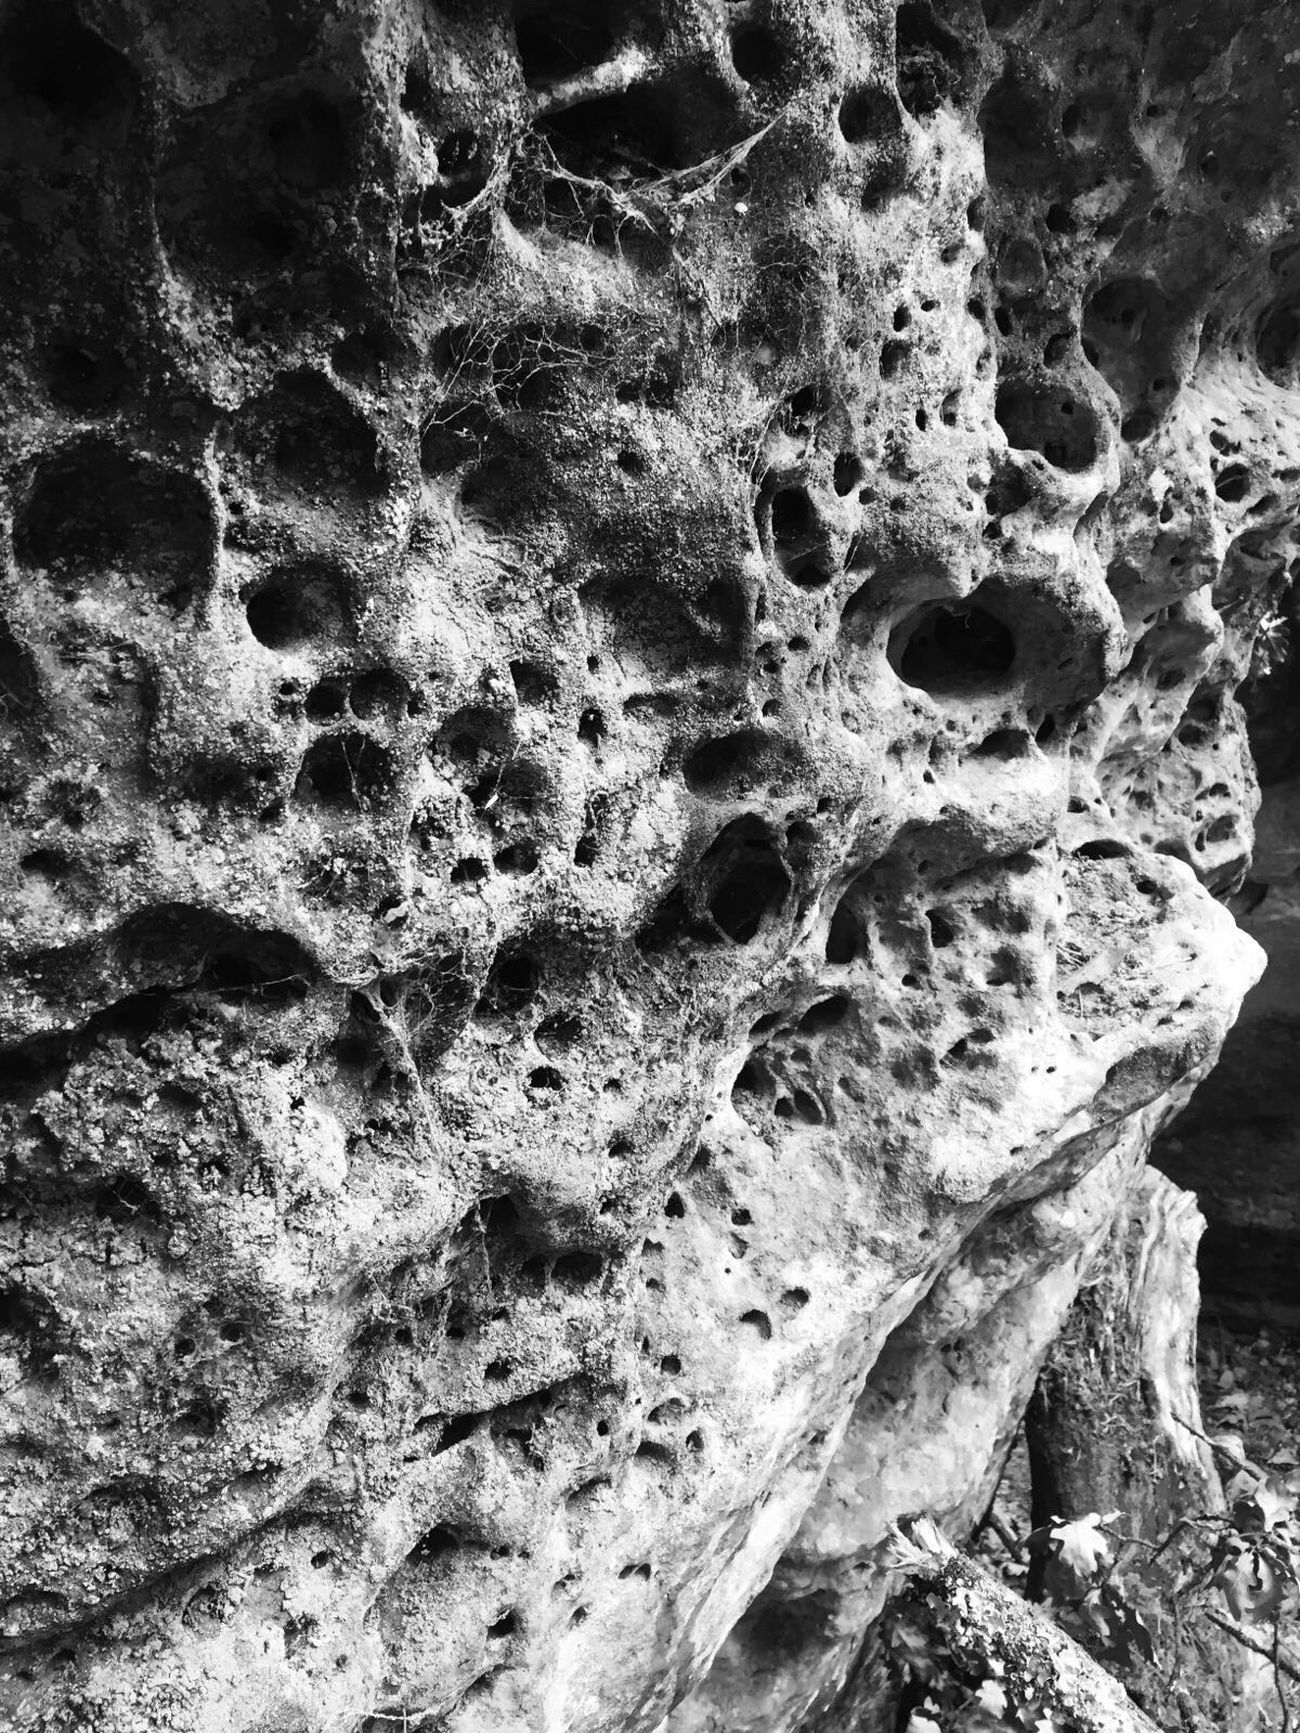 Fontaineblau rocks ✌🏻️ Rocks Holes Holes In Rock Holes In Rocks Bnw Bnw_friday_eyeemchallenge Fontainebleau France Close-up Textured  Bark Tree Trunk Weathered Damaged Growth Nature Day Focus On Foreground Natural Condition Botany No People